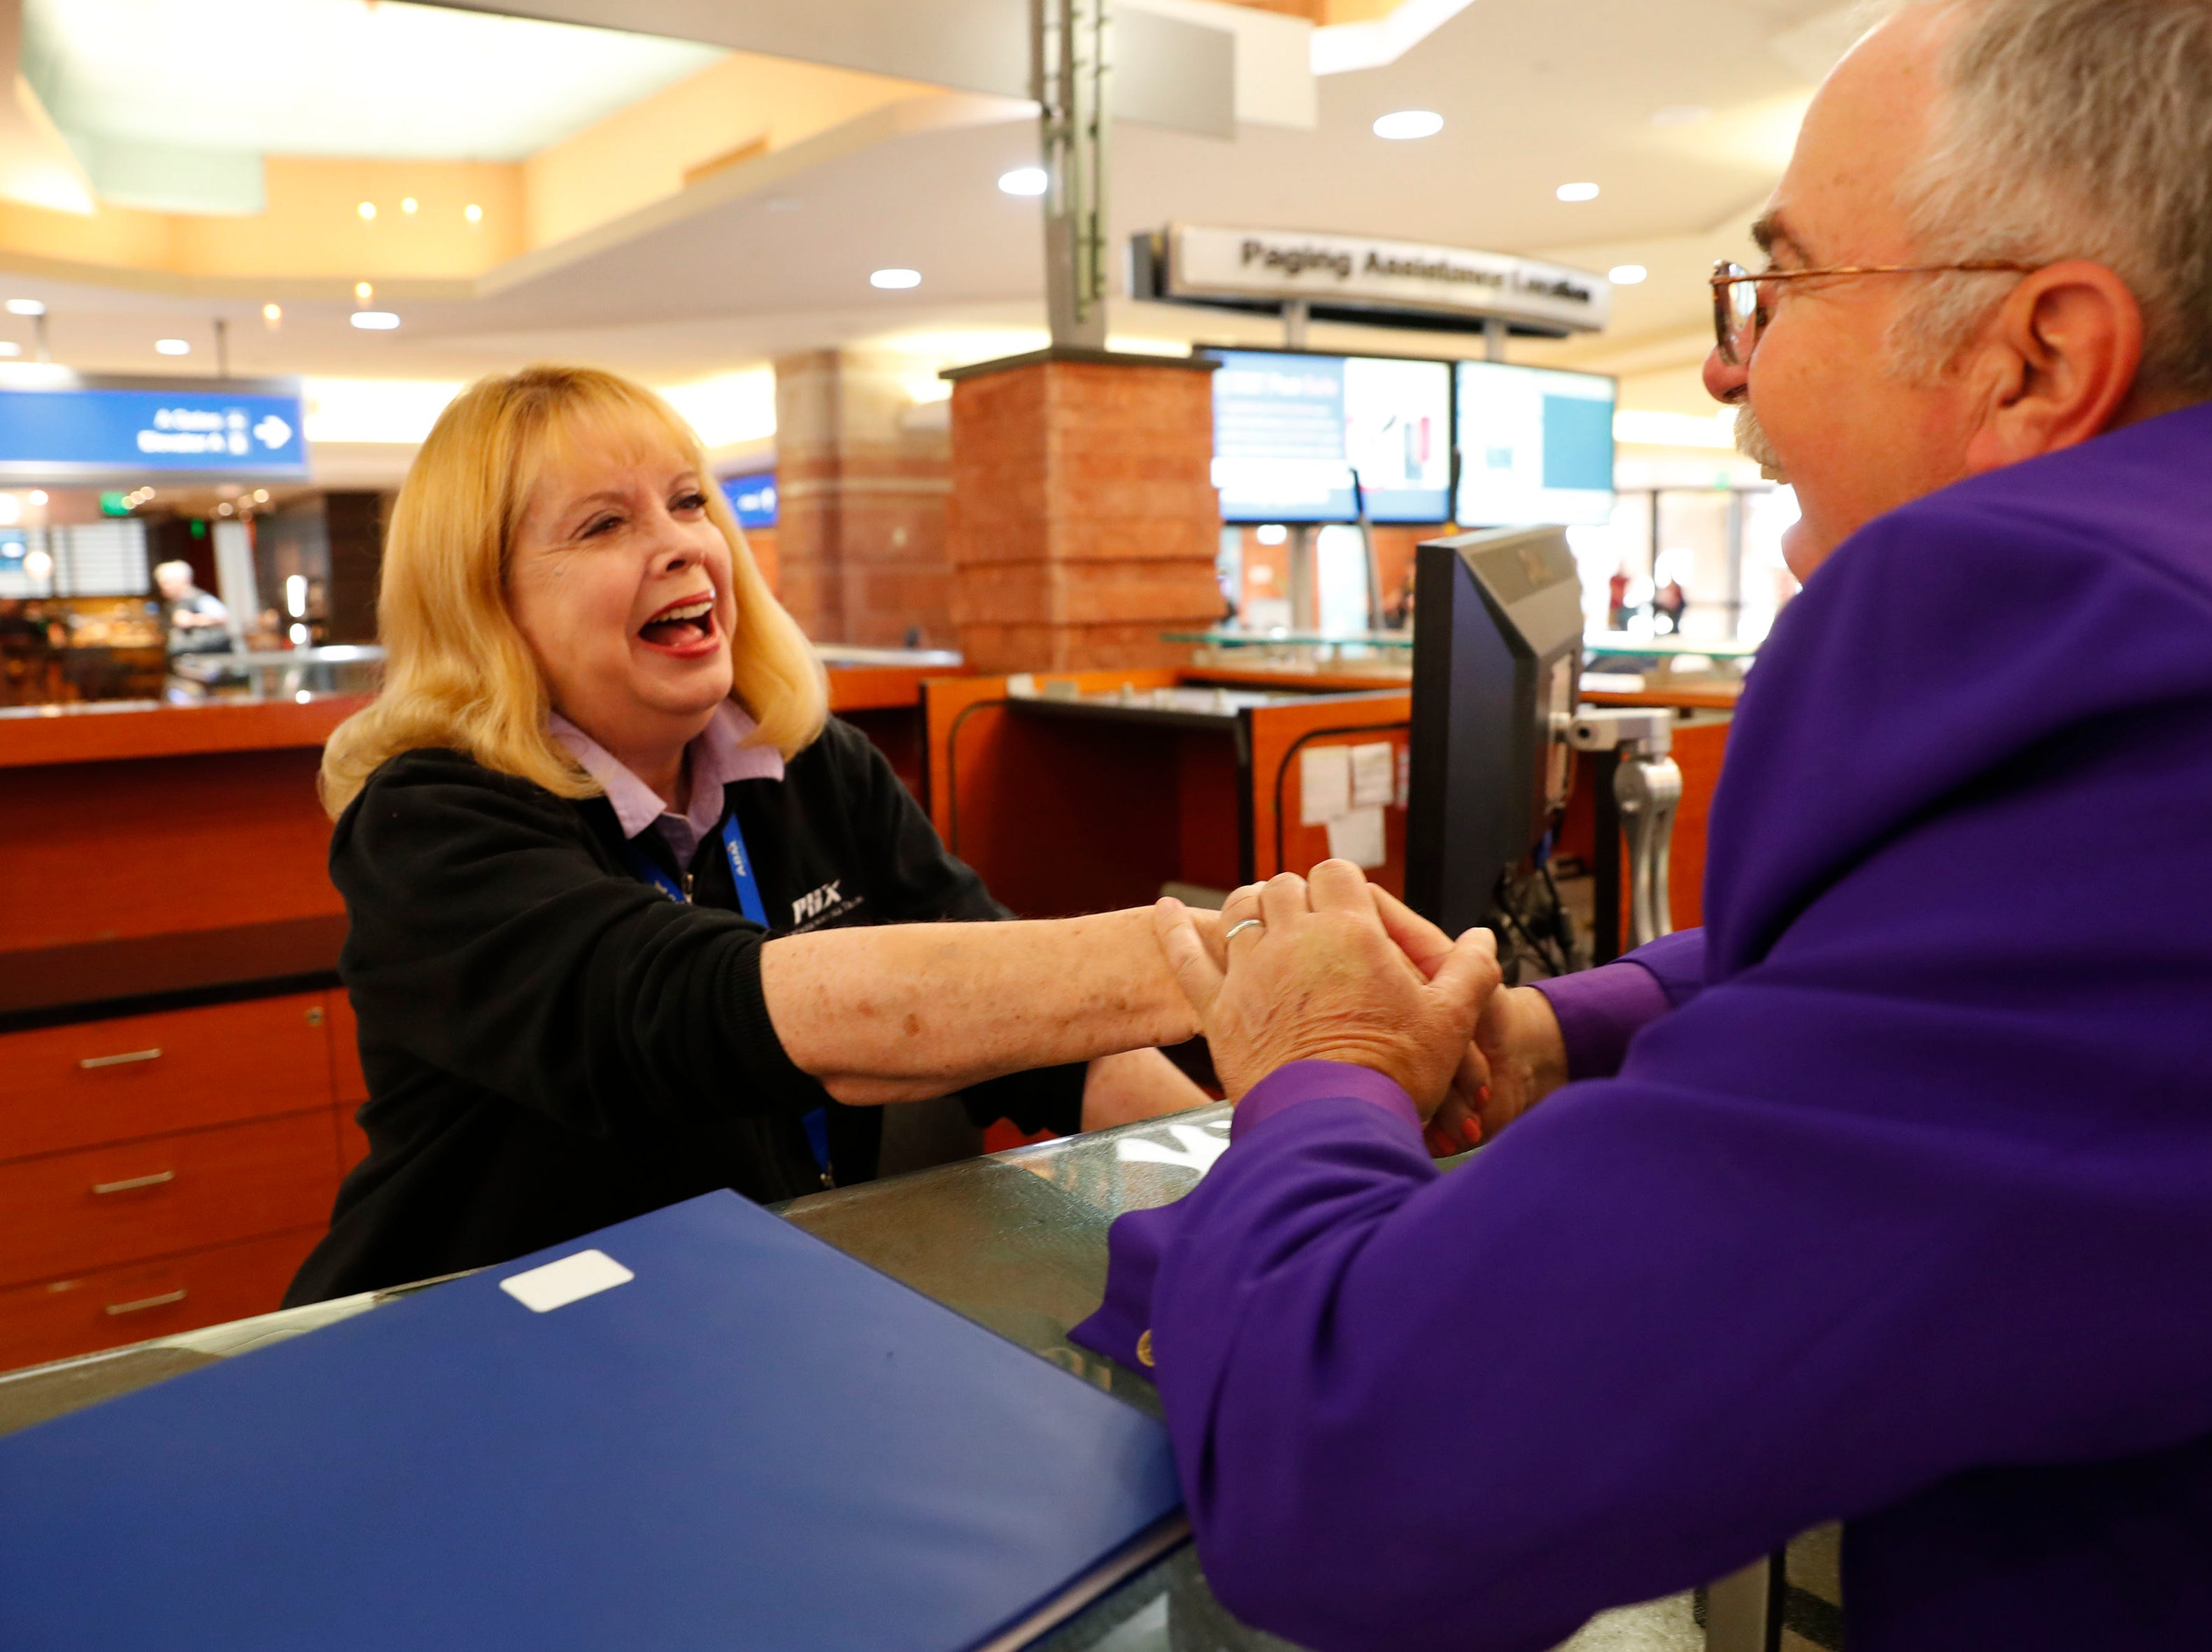 Mary Jo West shakes hands with John Vitt while working at the information desk at Phoenix Shy Harbor Airport on April 3, 2019. The first female news anchor in Arizona has been a volunteer at Terminal 4 for three months.